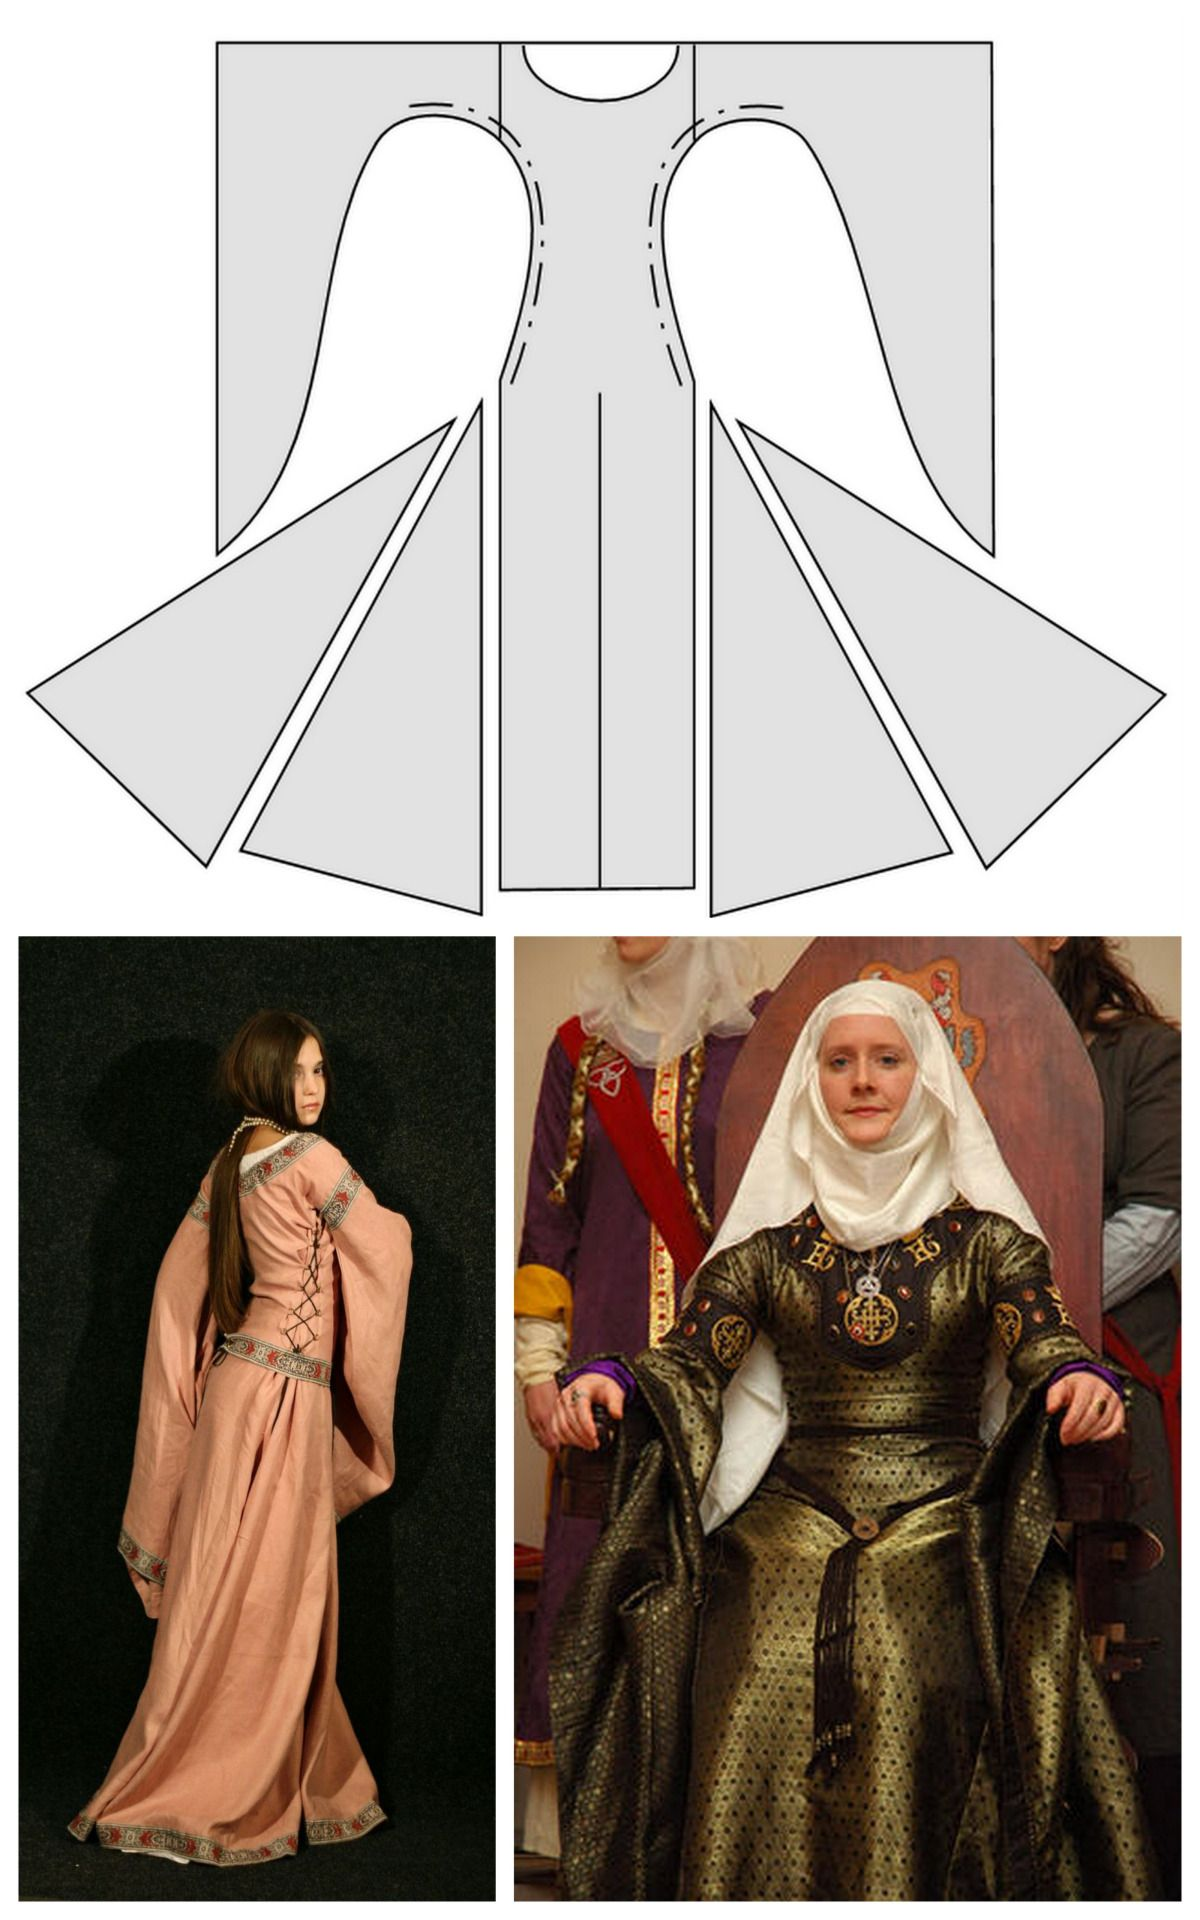 b78cec69376 truebluemeandyou  DIY Medieval Dresses from Medieval Wedding Dresses. The  above photos are of the